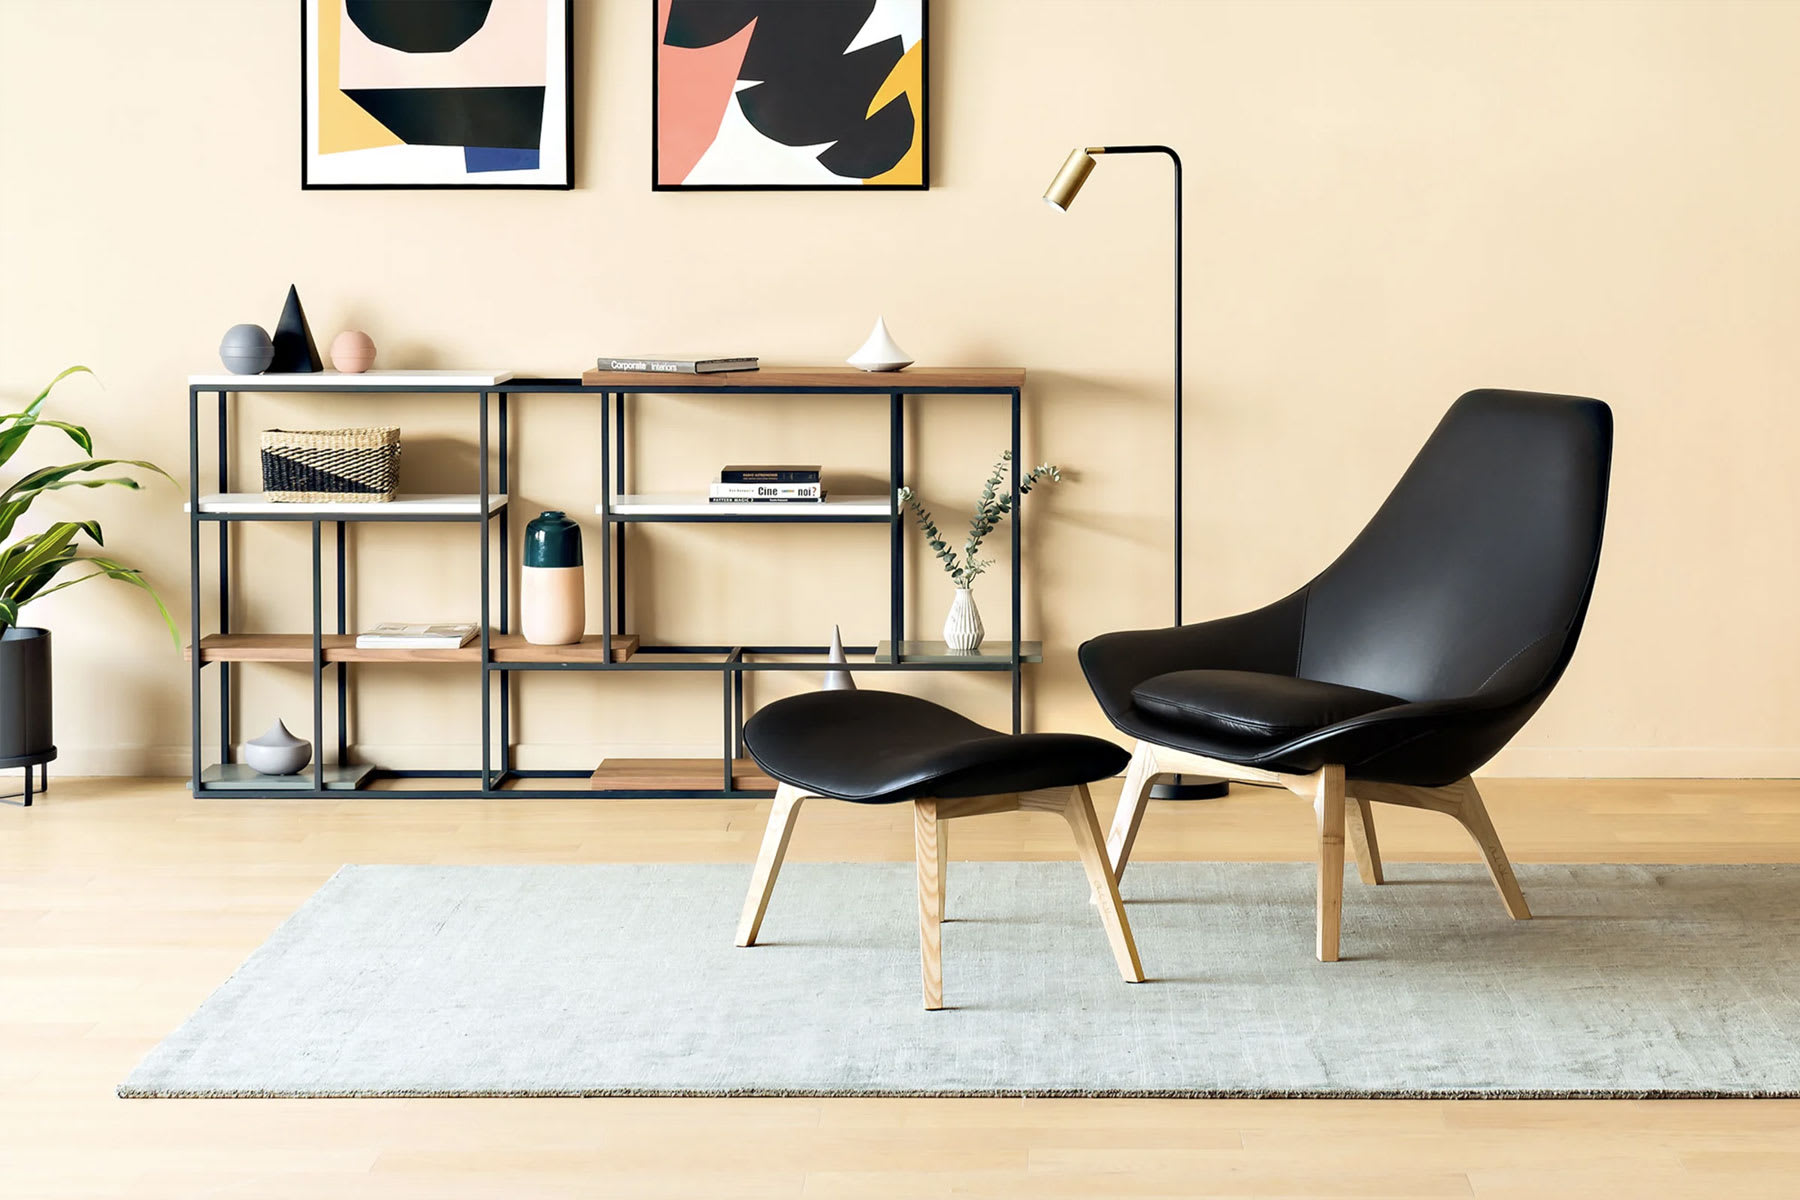 black low leather armchair with ottoman in mid-modern century style